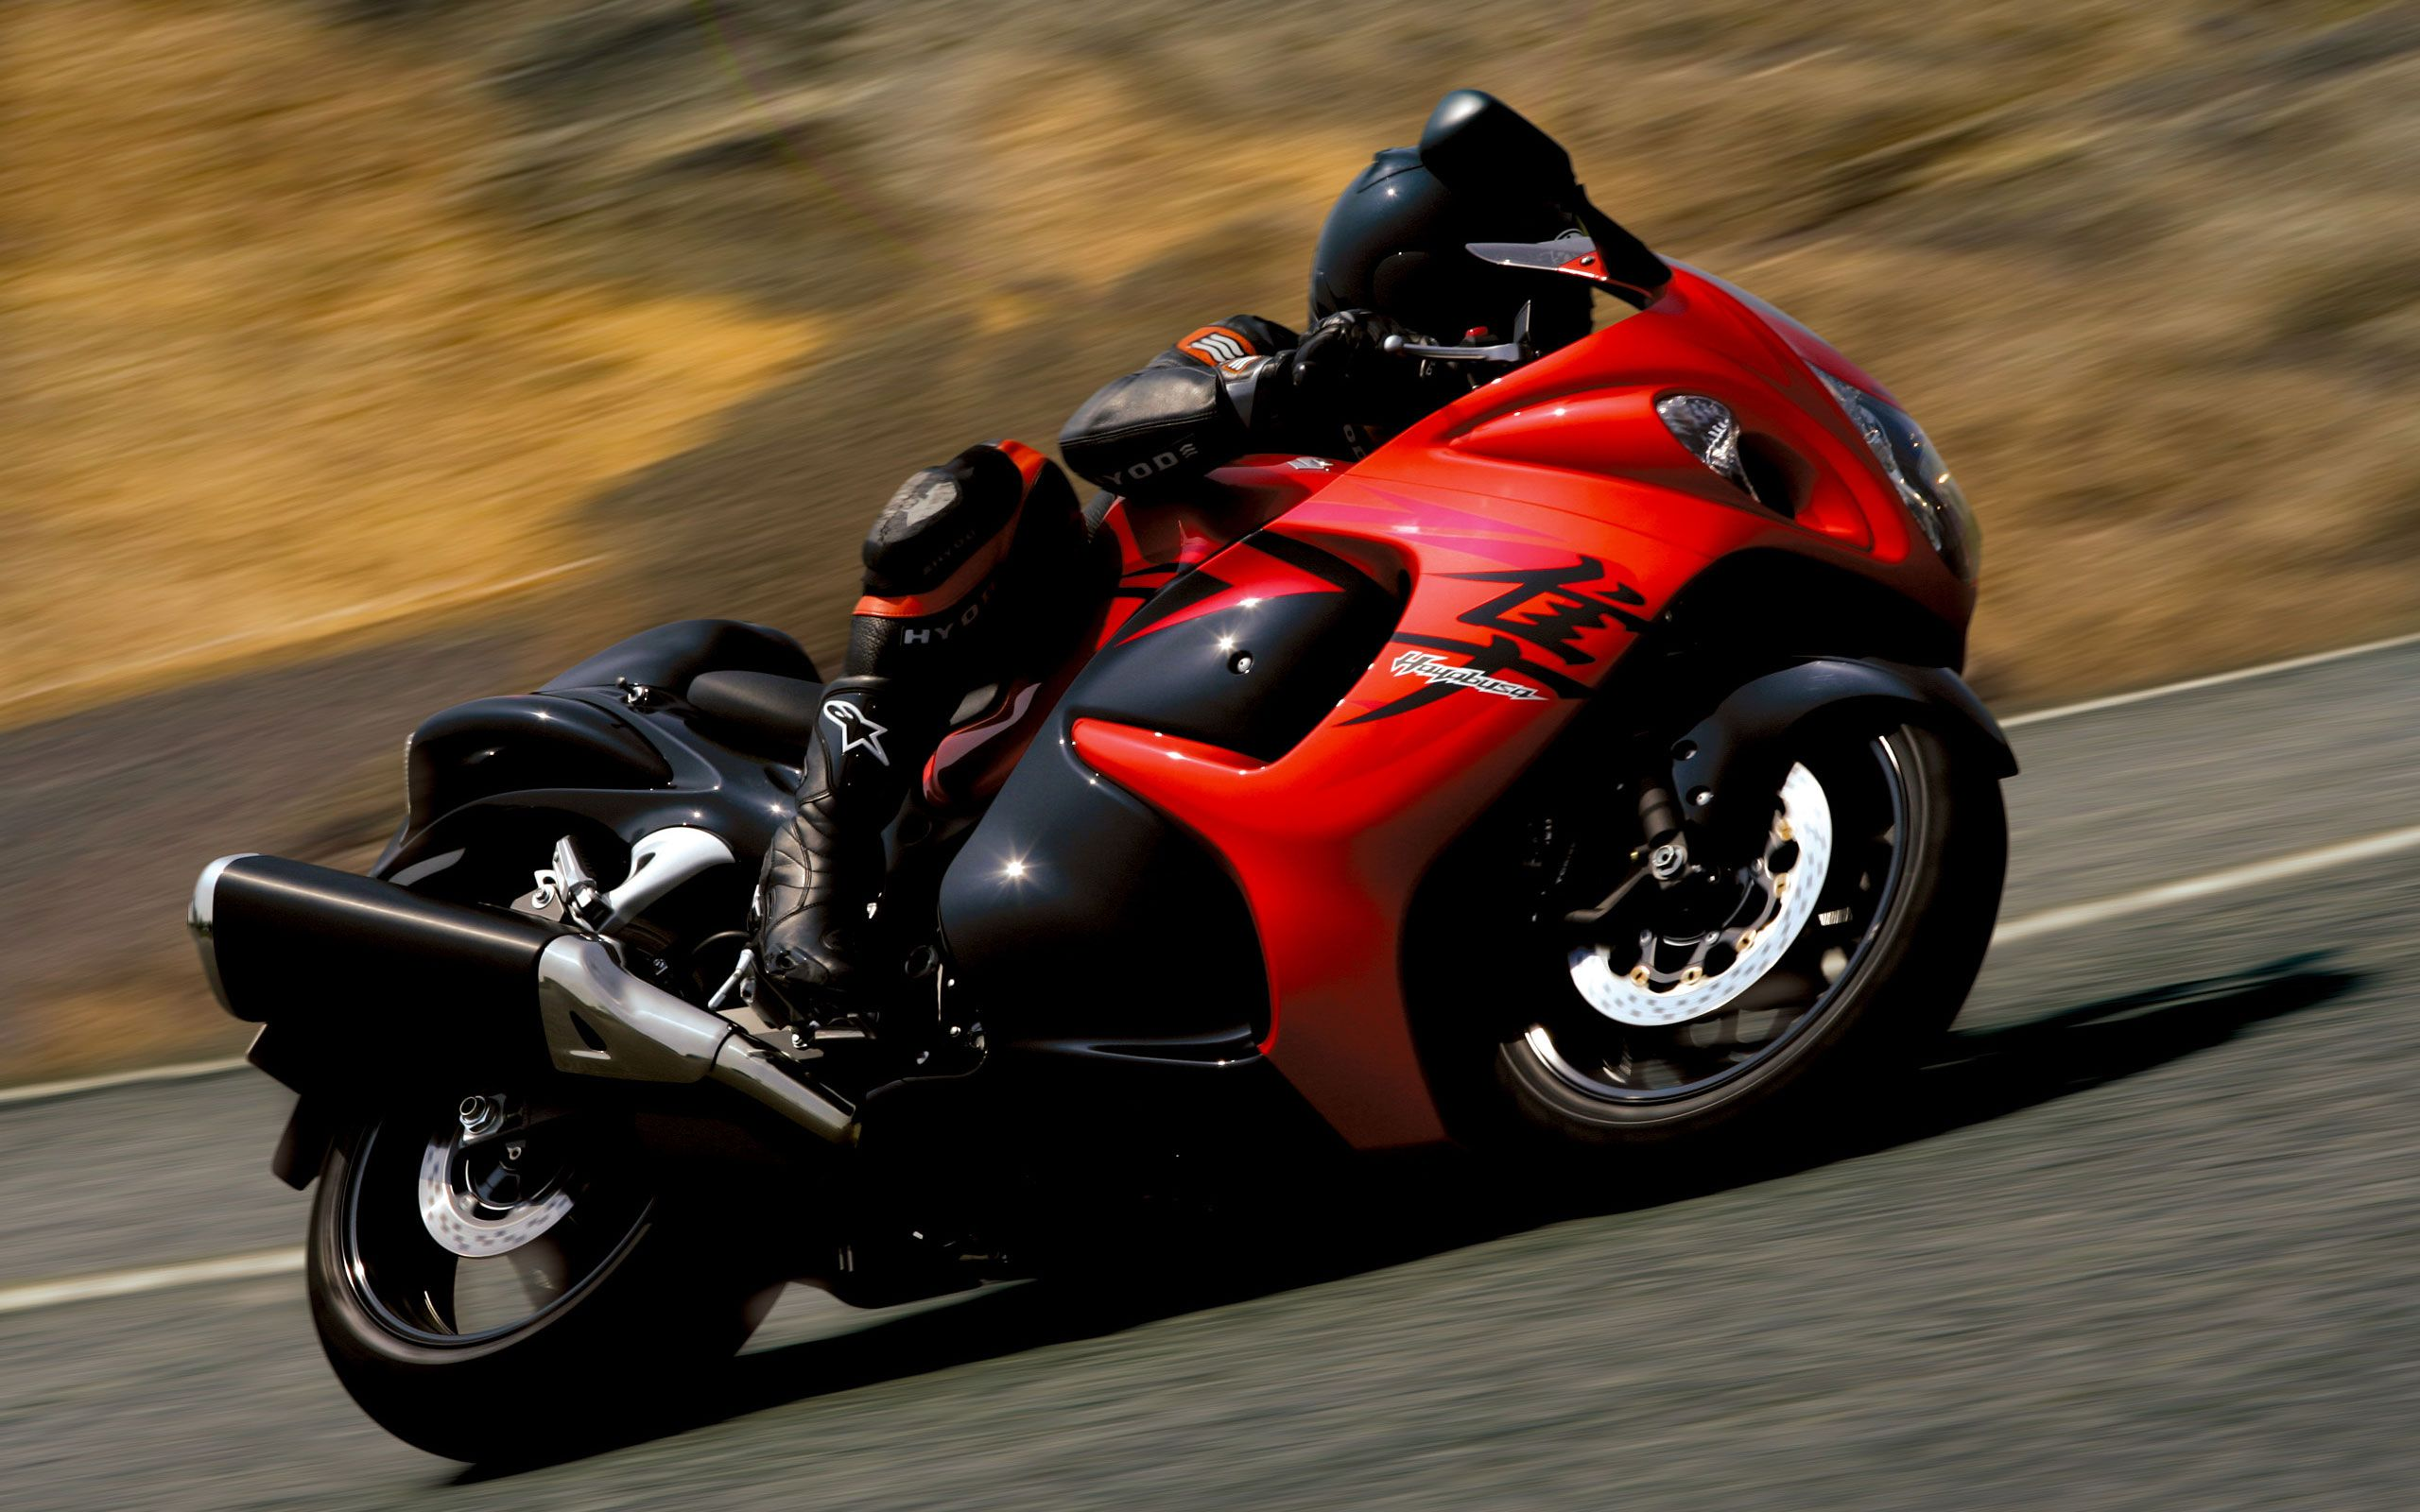 Awesome Suzuki Hayabusa Bike Wallpapers Free Full Hd Wallpapers For